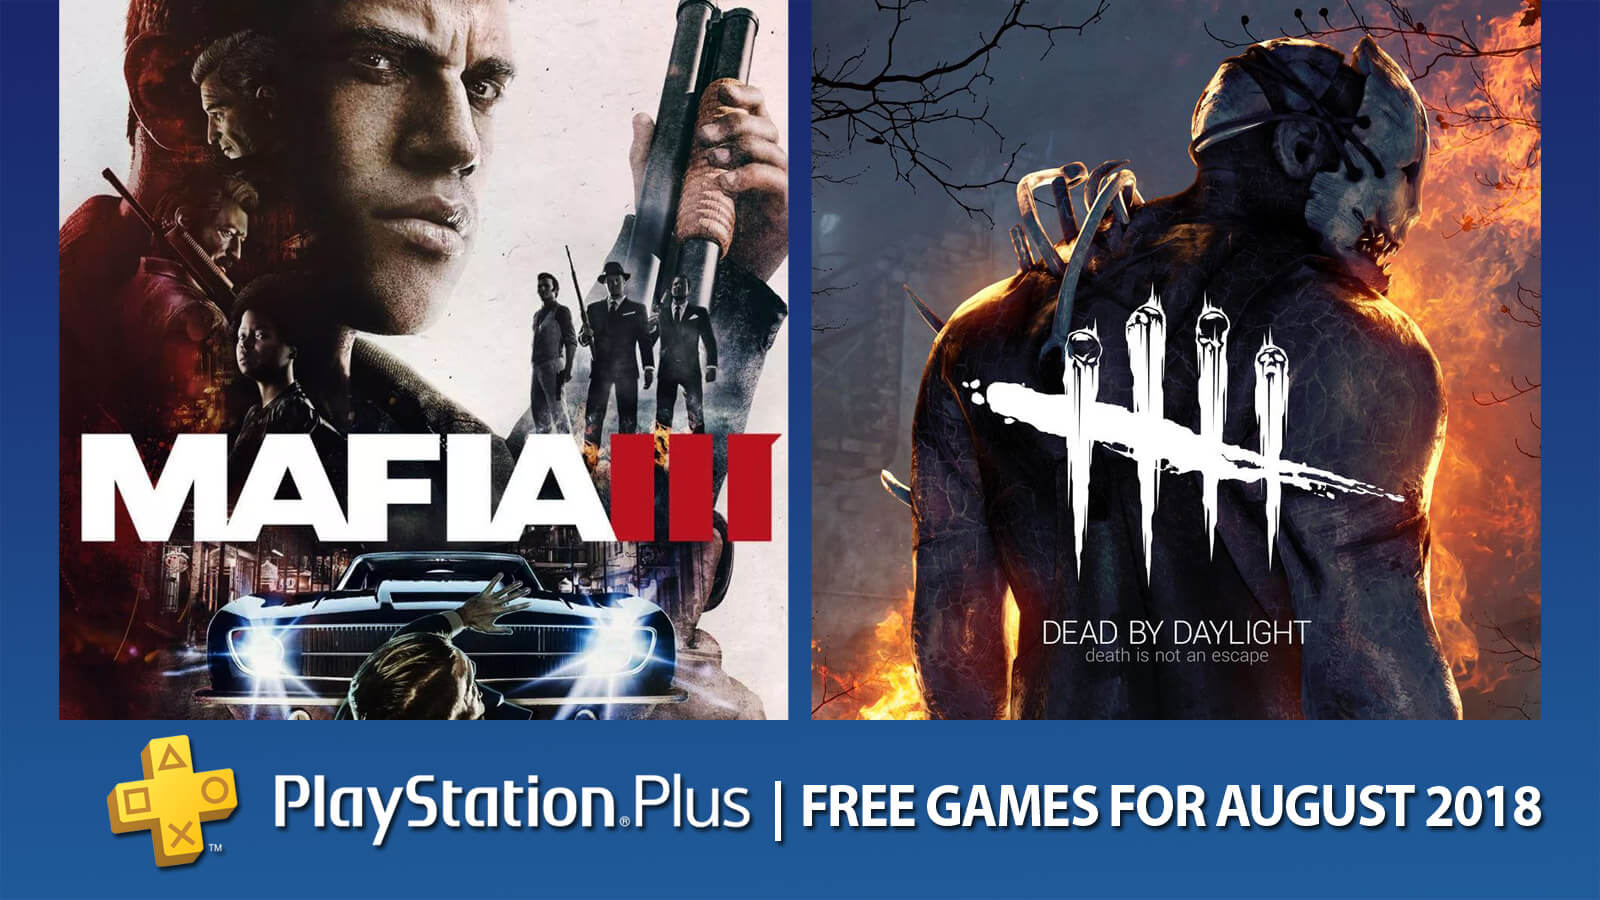 Psn Free Games August 2020.Playstation Plus Free Games For August 2018 Gameslaught